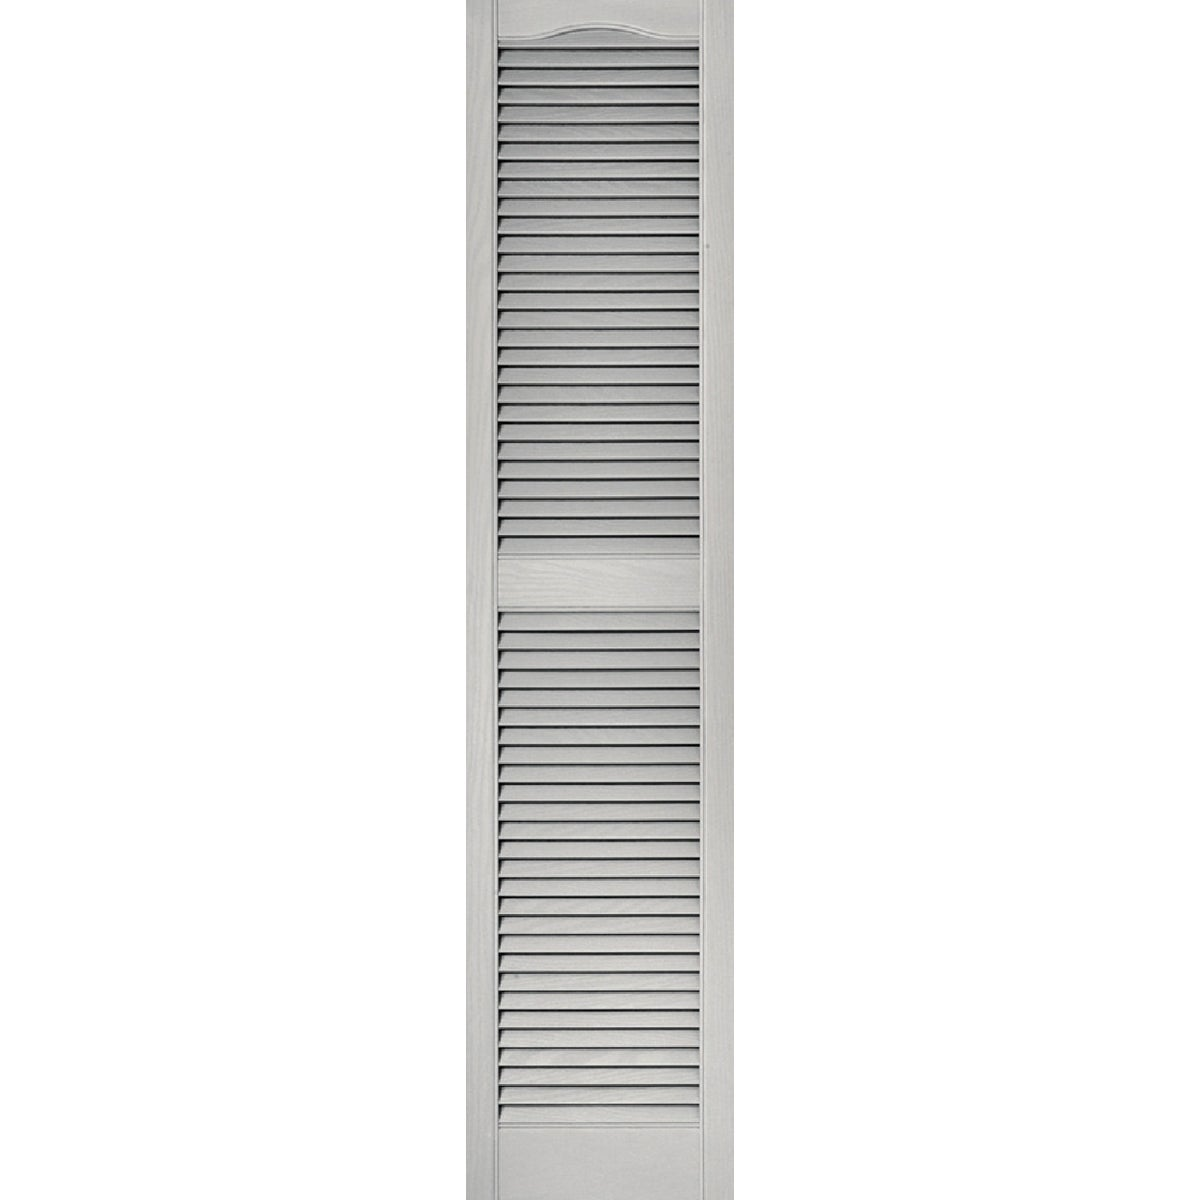 15X64 PBL LOUVER SHUTTER - 020140064030 by The Tapco Group